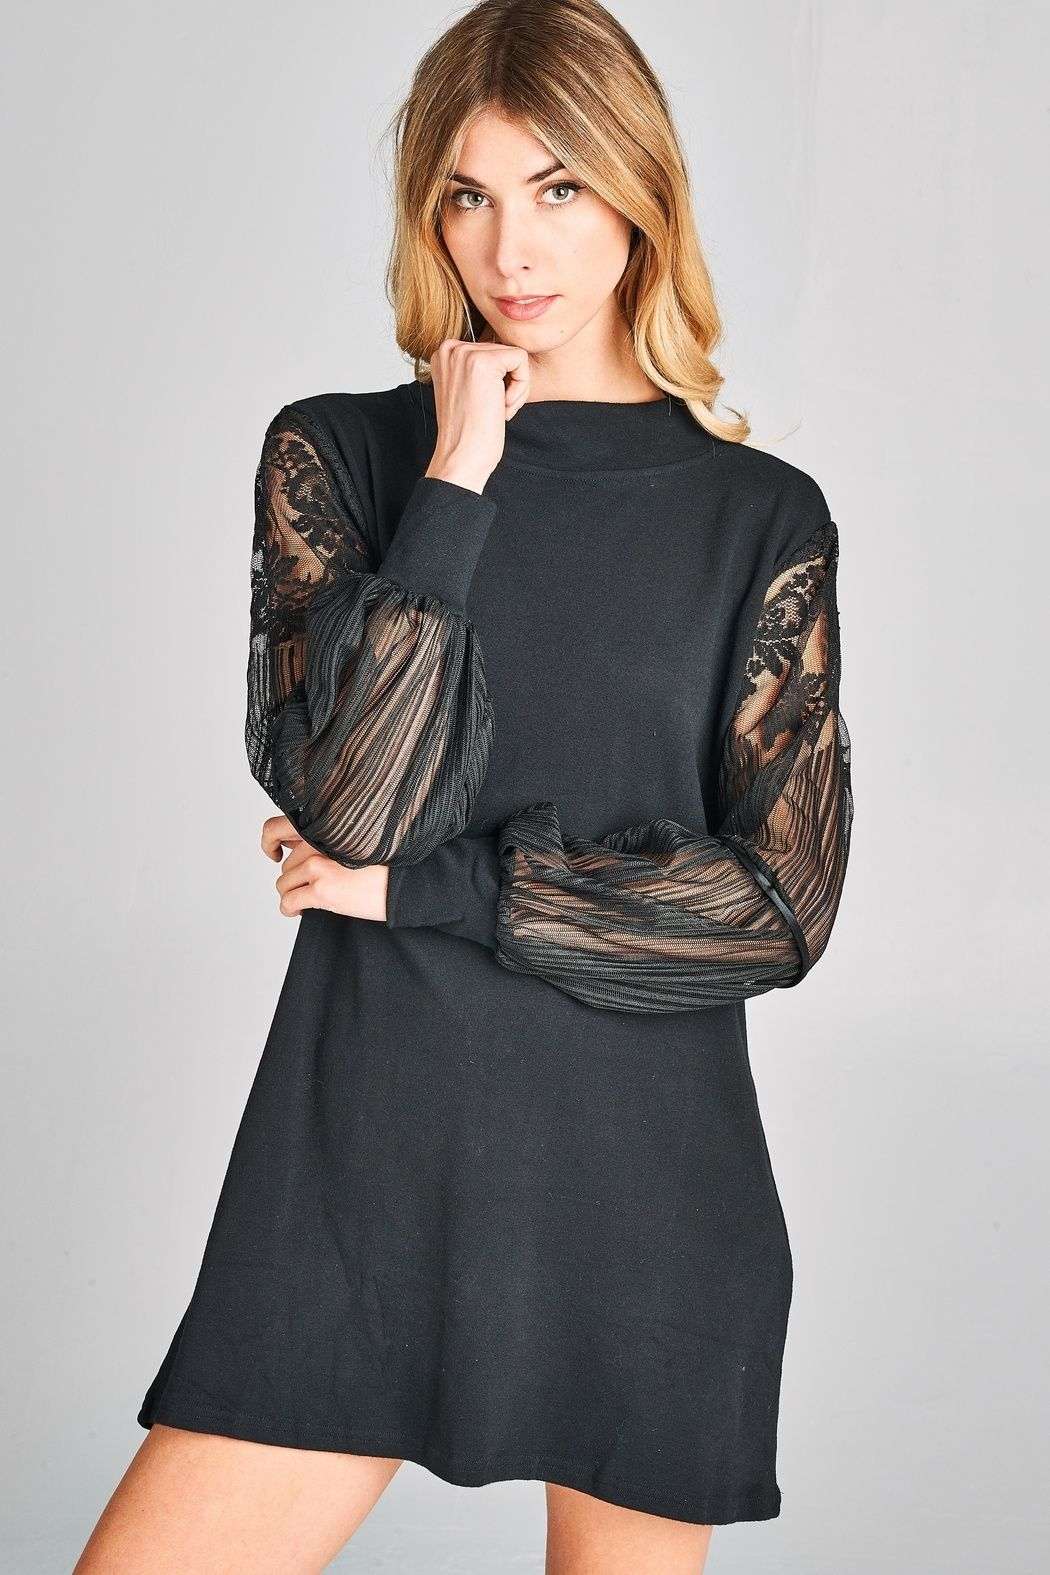 5066aed9155 Knit cuff sleeve detailing. Lace-Sleeve Cotton Dress by Racine. Clothing -  Dresses - LBD California